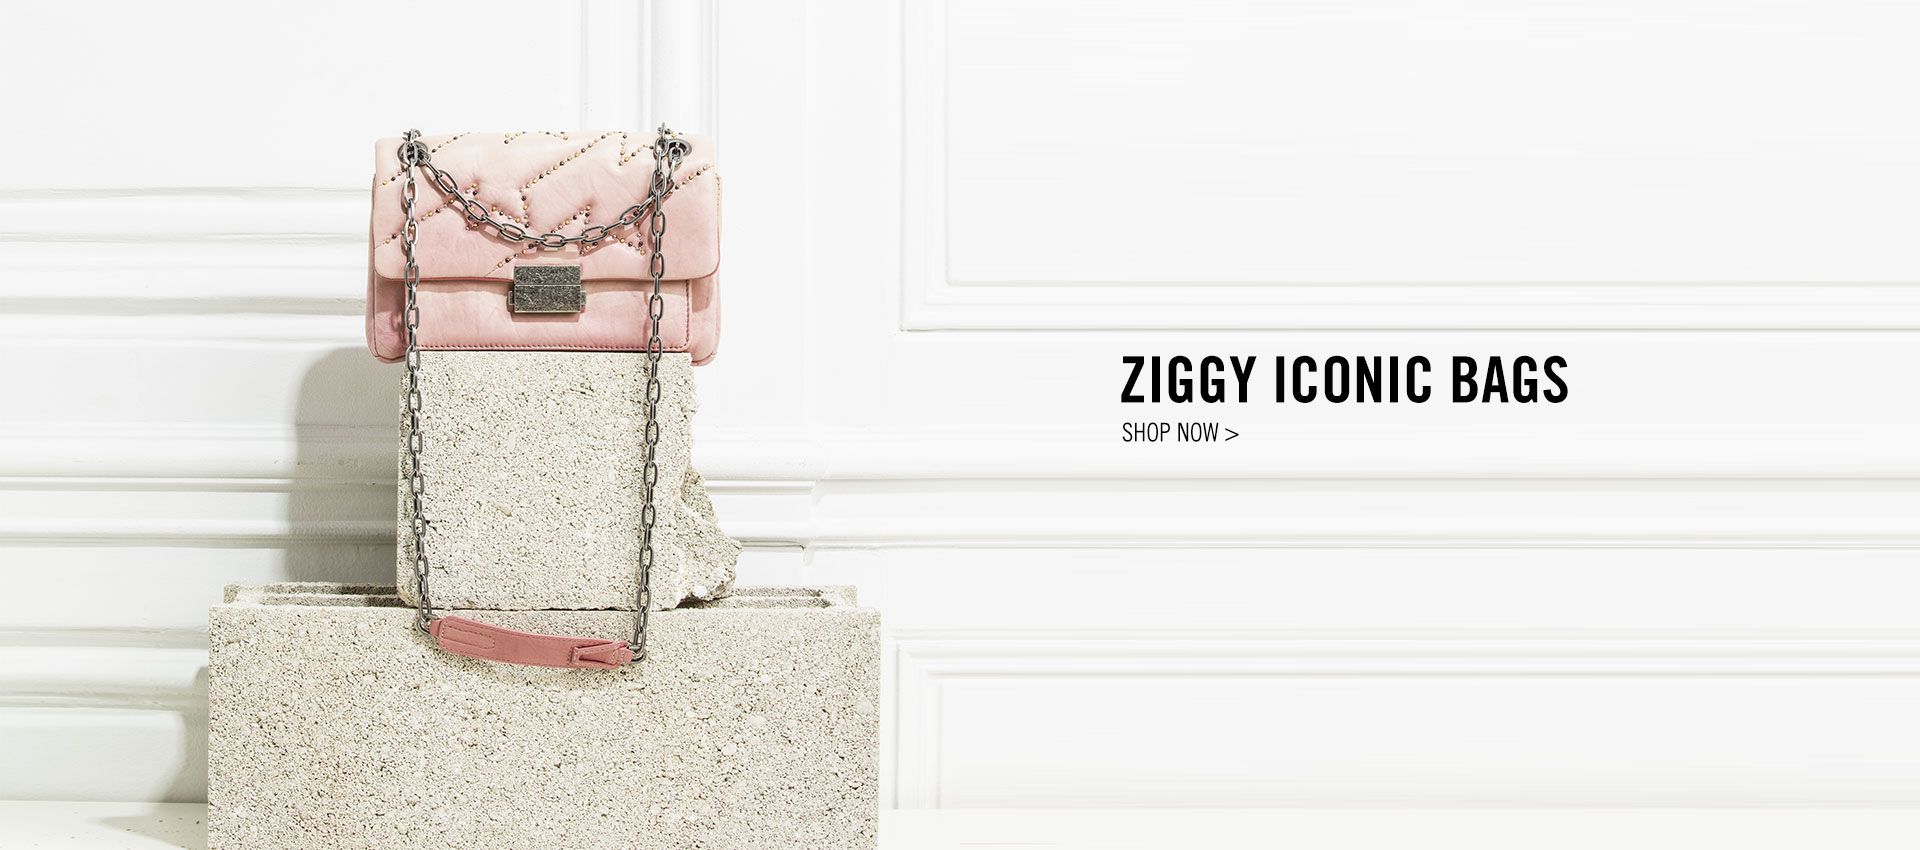 ZIGGY the new Iconic bag by Zadig&Voltaire in 7 different colours that you will love! - ZIGGY bags will add a chic and elegant style at your sylish look